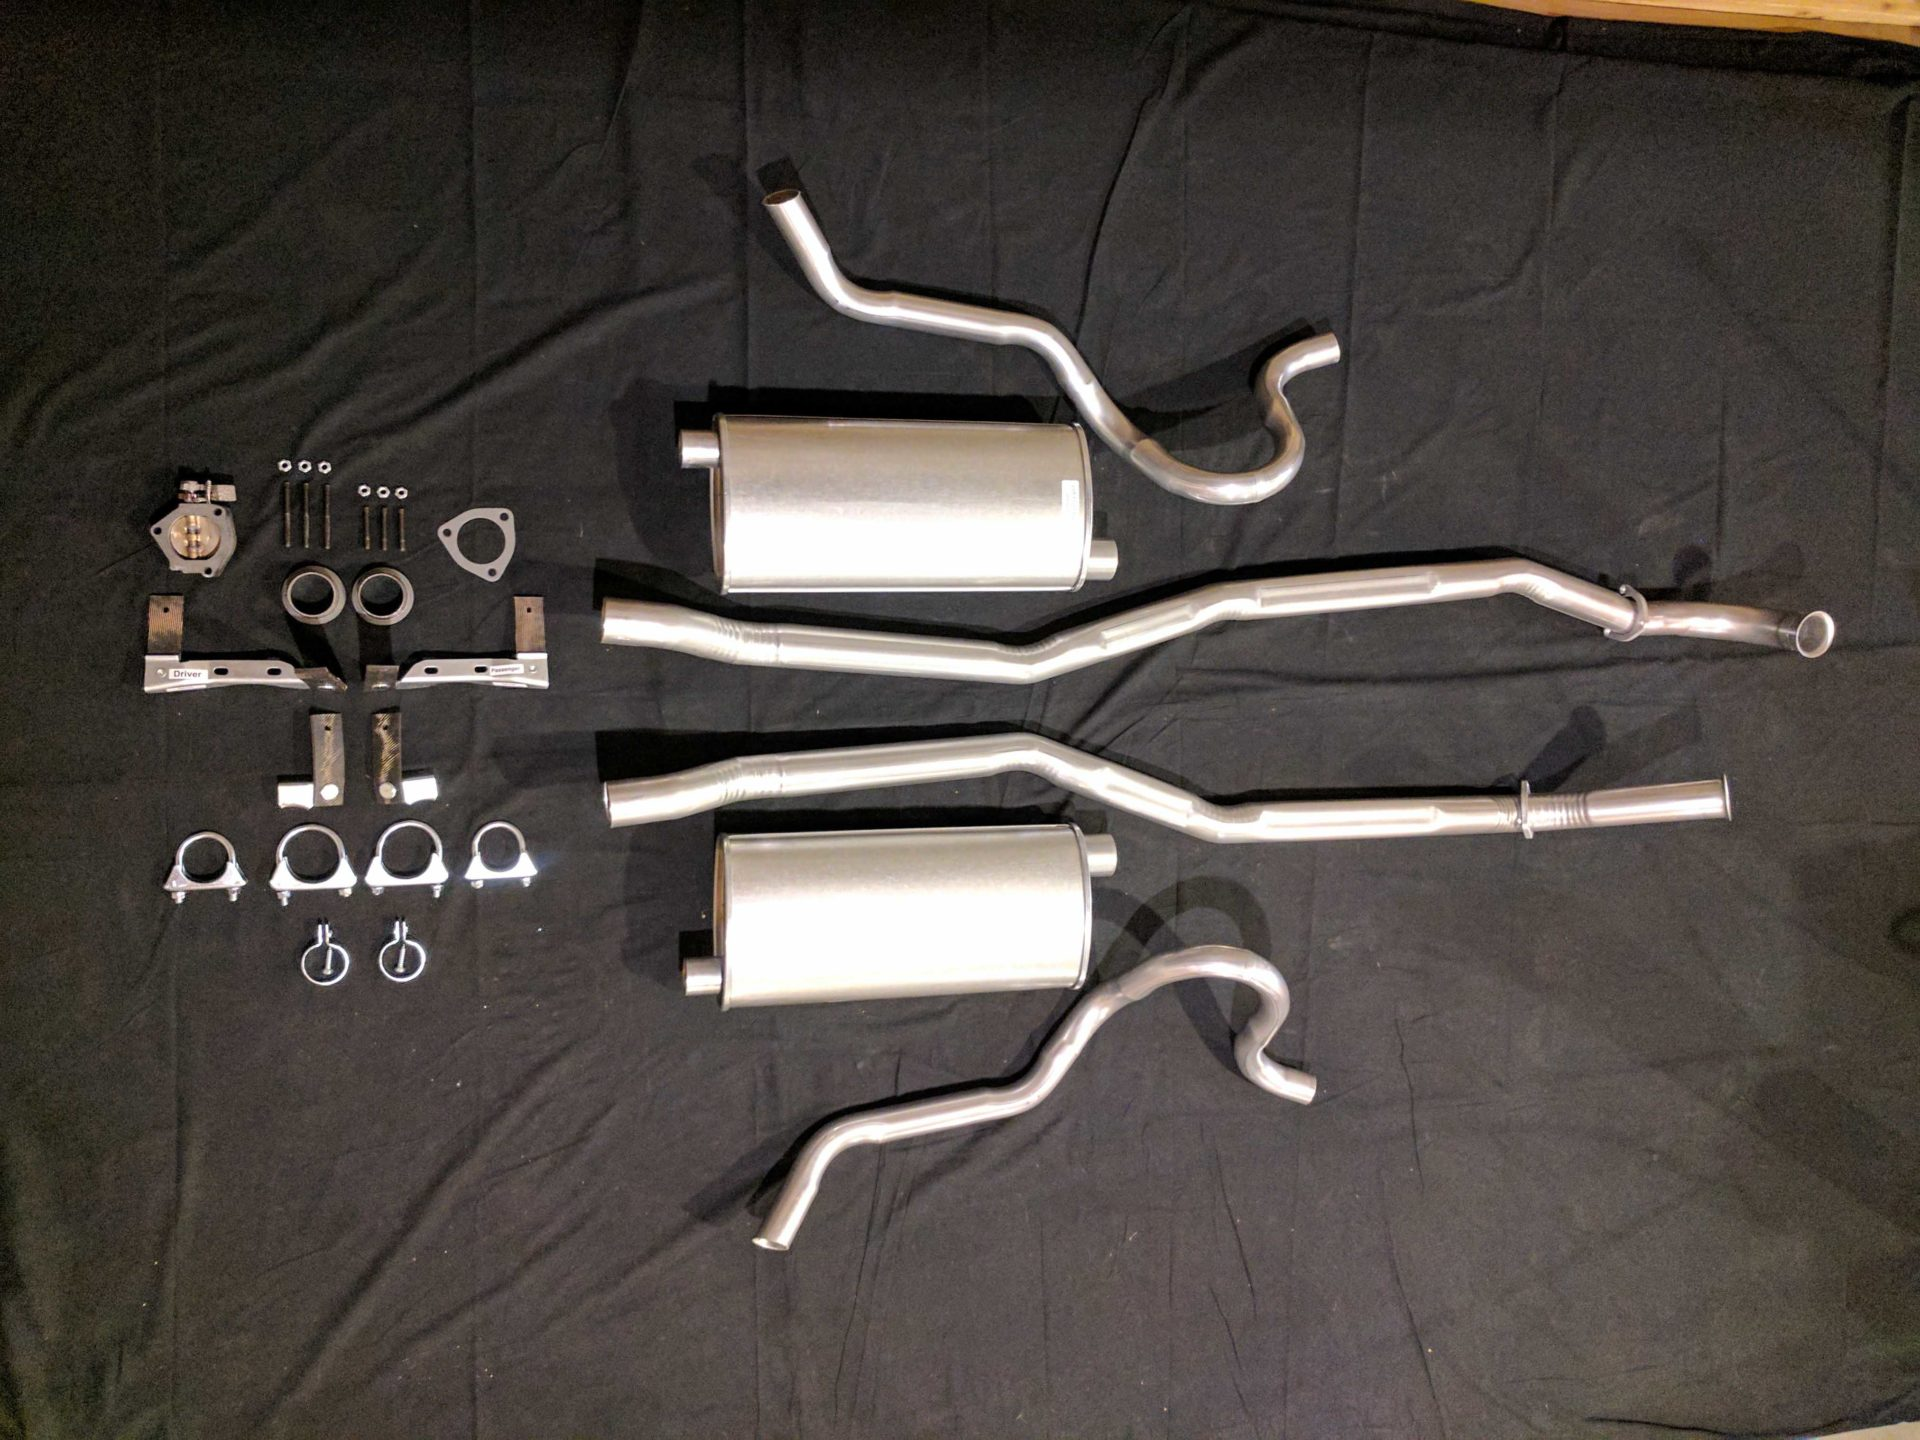 1969 El Camino Ss Exhaust System Kits Muscle Car Exhaust